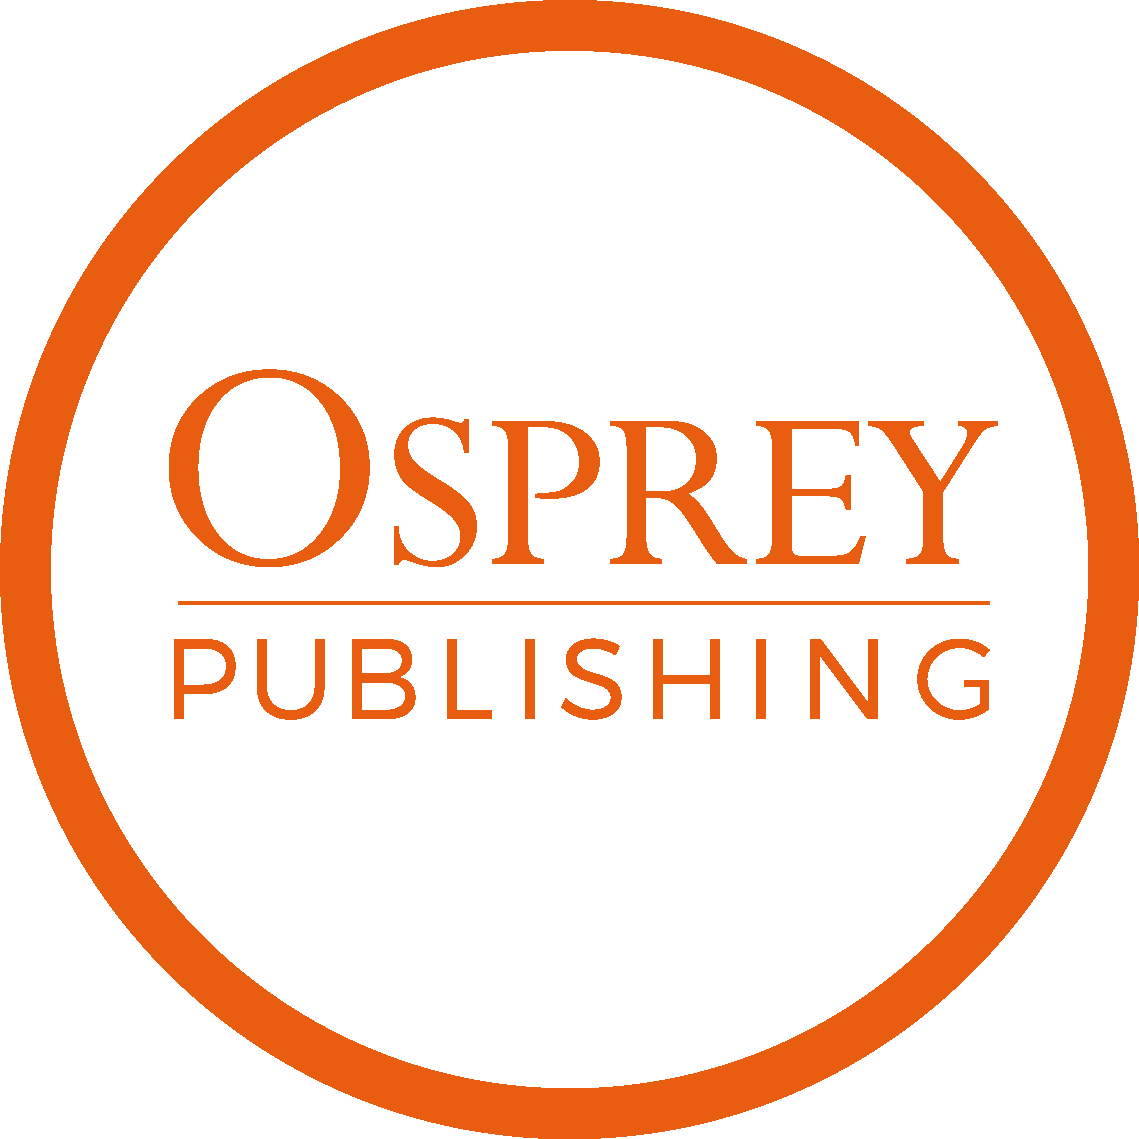 OspreyPublishing-01